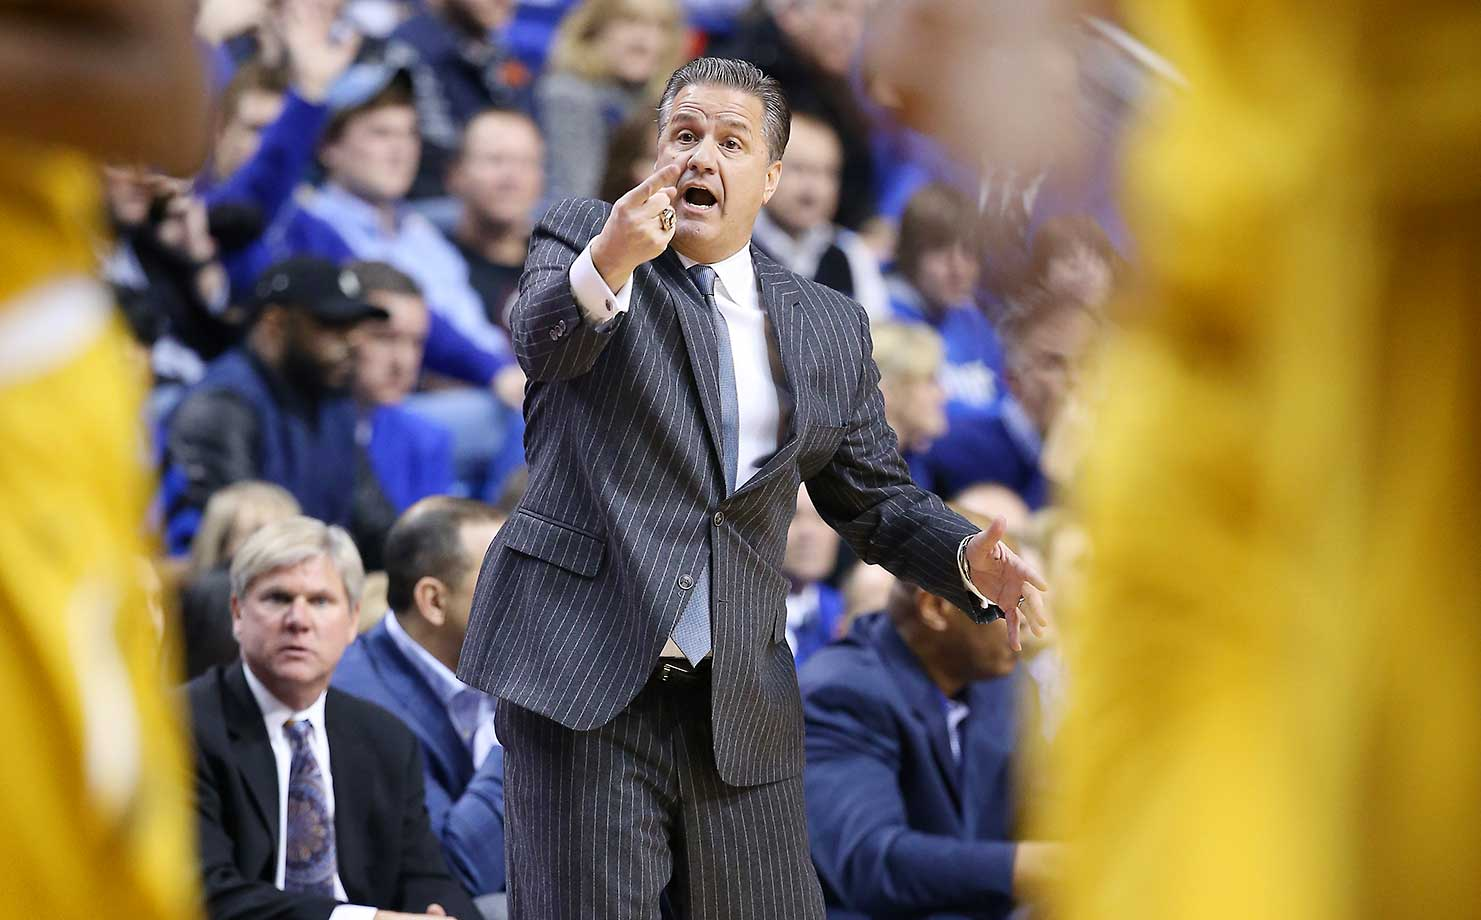 John Calipari of the Kentucky Wildcats gives instructions to his players during a game against the Missouri Tigers at Rupp Arena in Lexington.